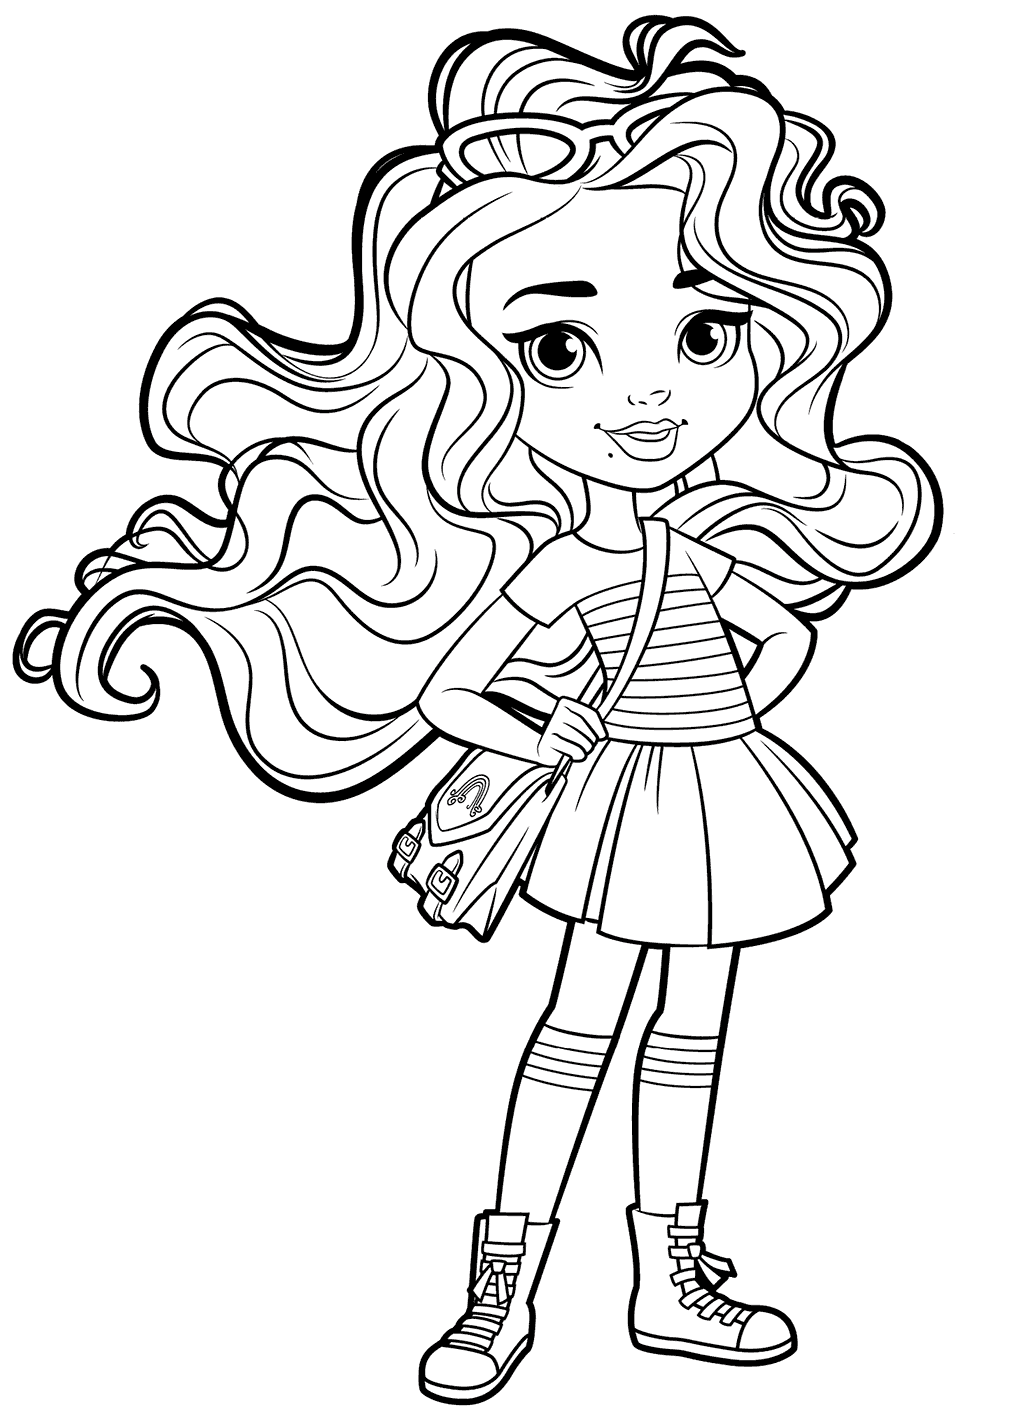 Pin By Milena Marciniec Margas On Coloring Pages Cute Coloring Pages Coloring Pages Poppy Coloring Page